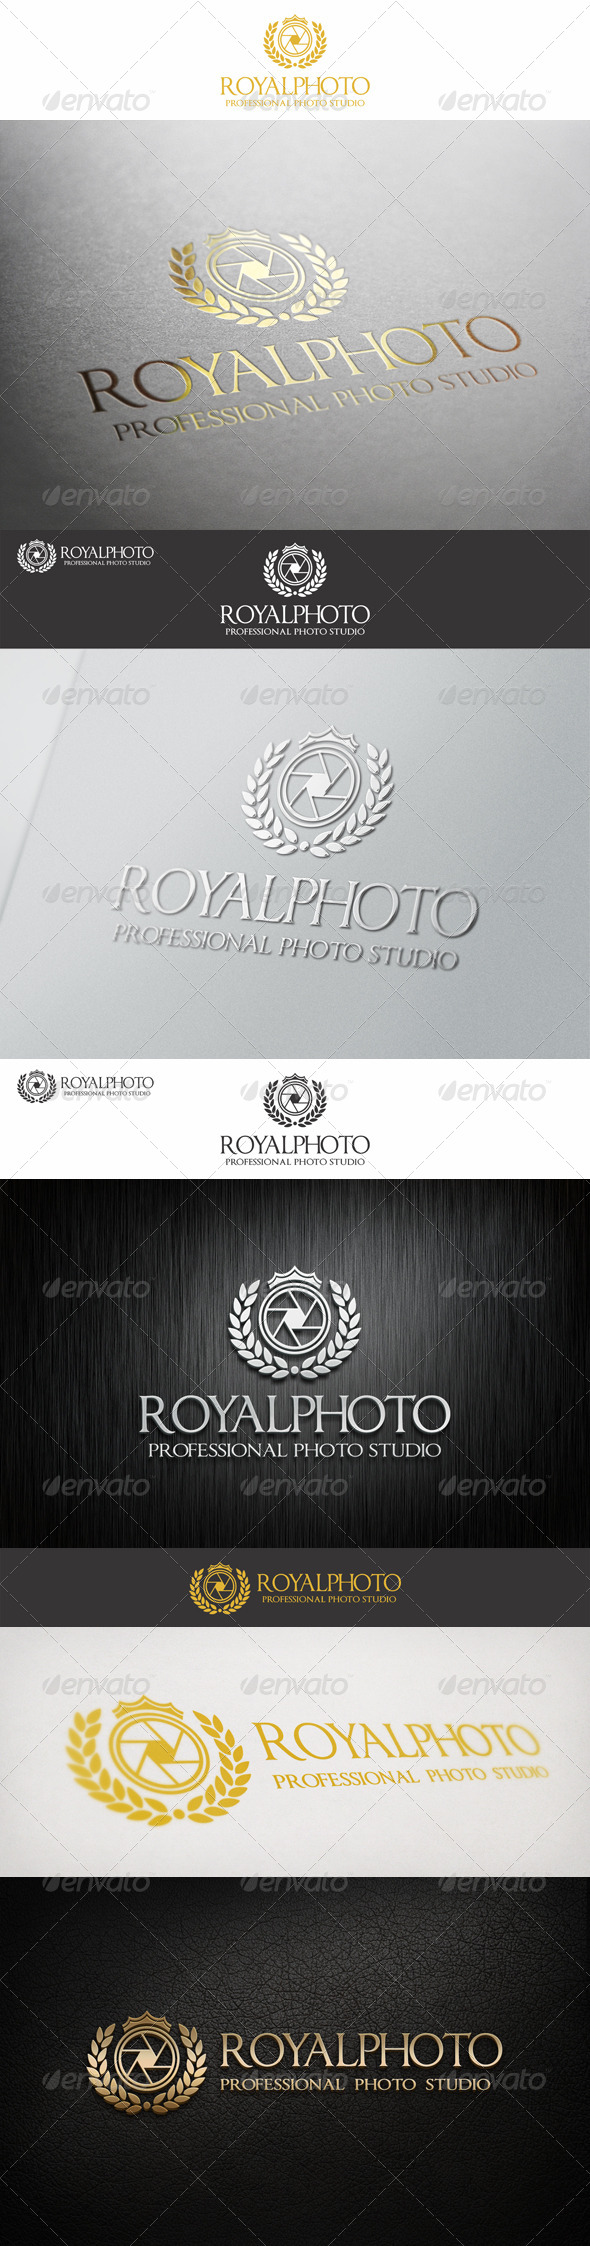 Royal Photo Professional Studio Logo - Crests Logo Templates